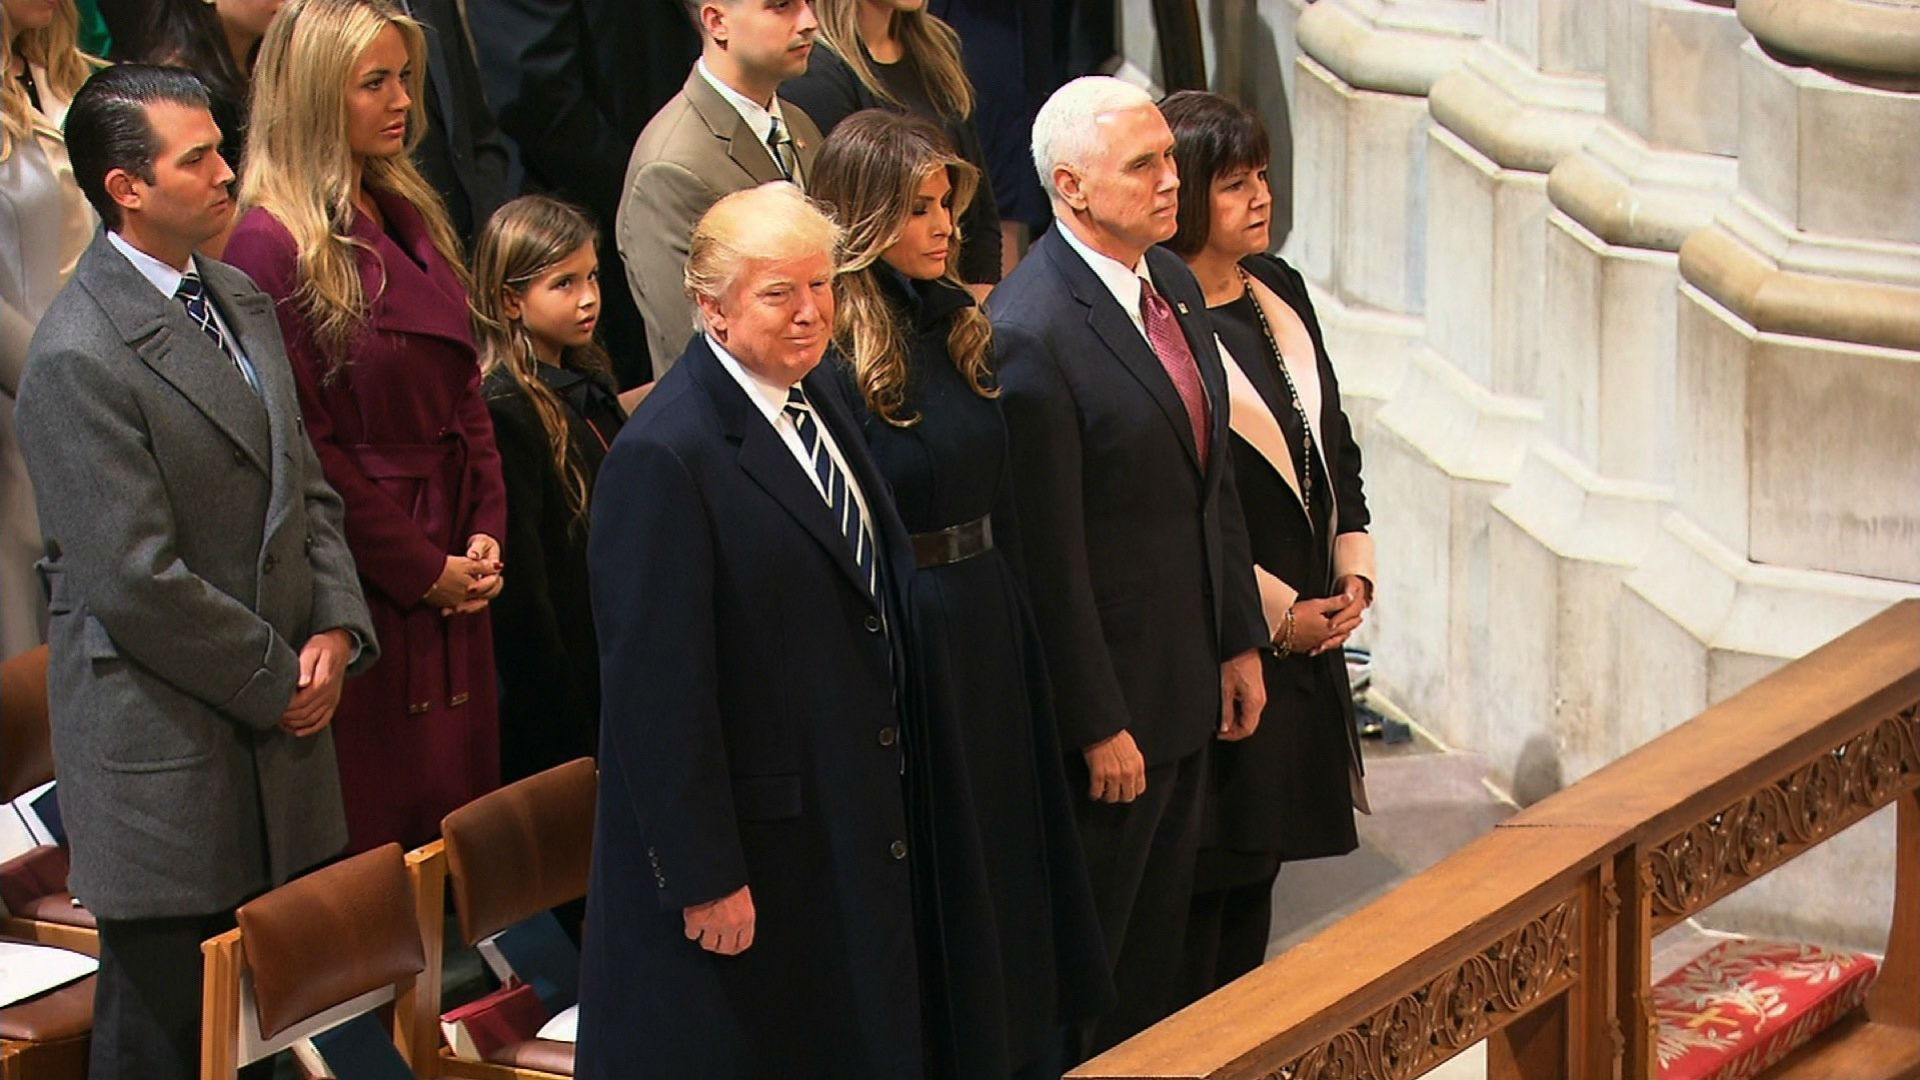 Trump at the National Cathedral for the 58th Presidential Inaugural Prayer Service on January 21st, 2017.